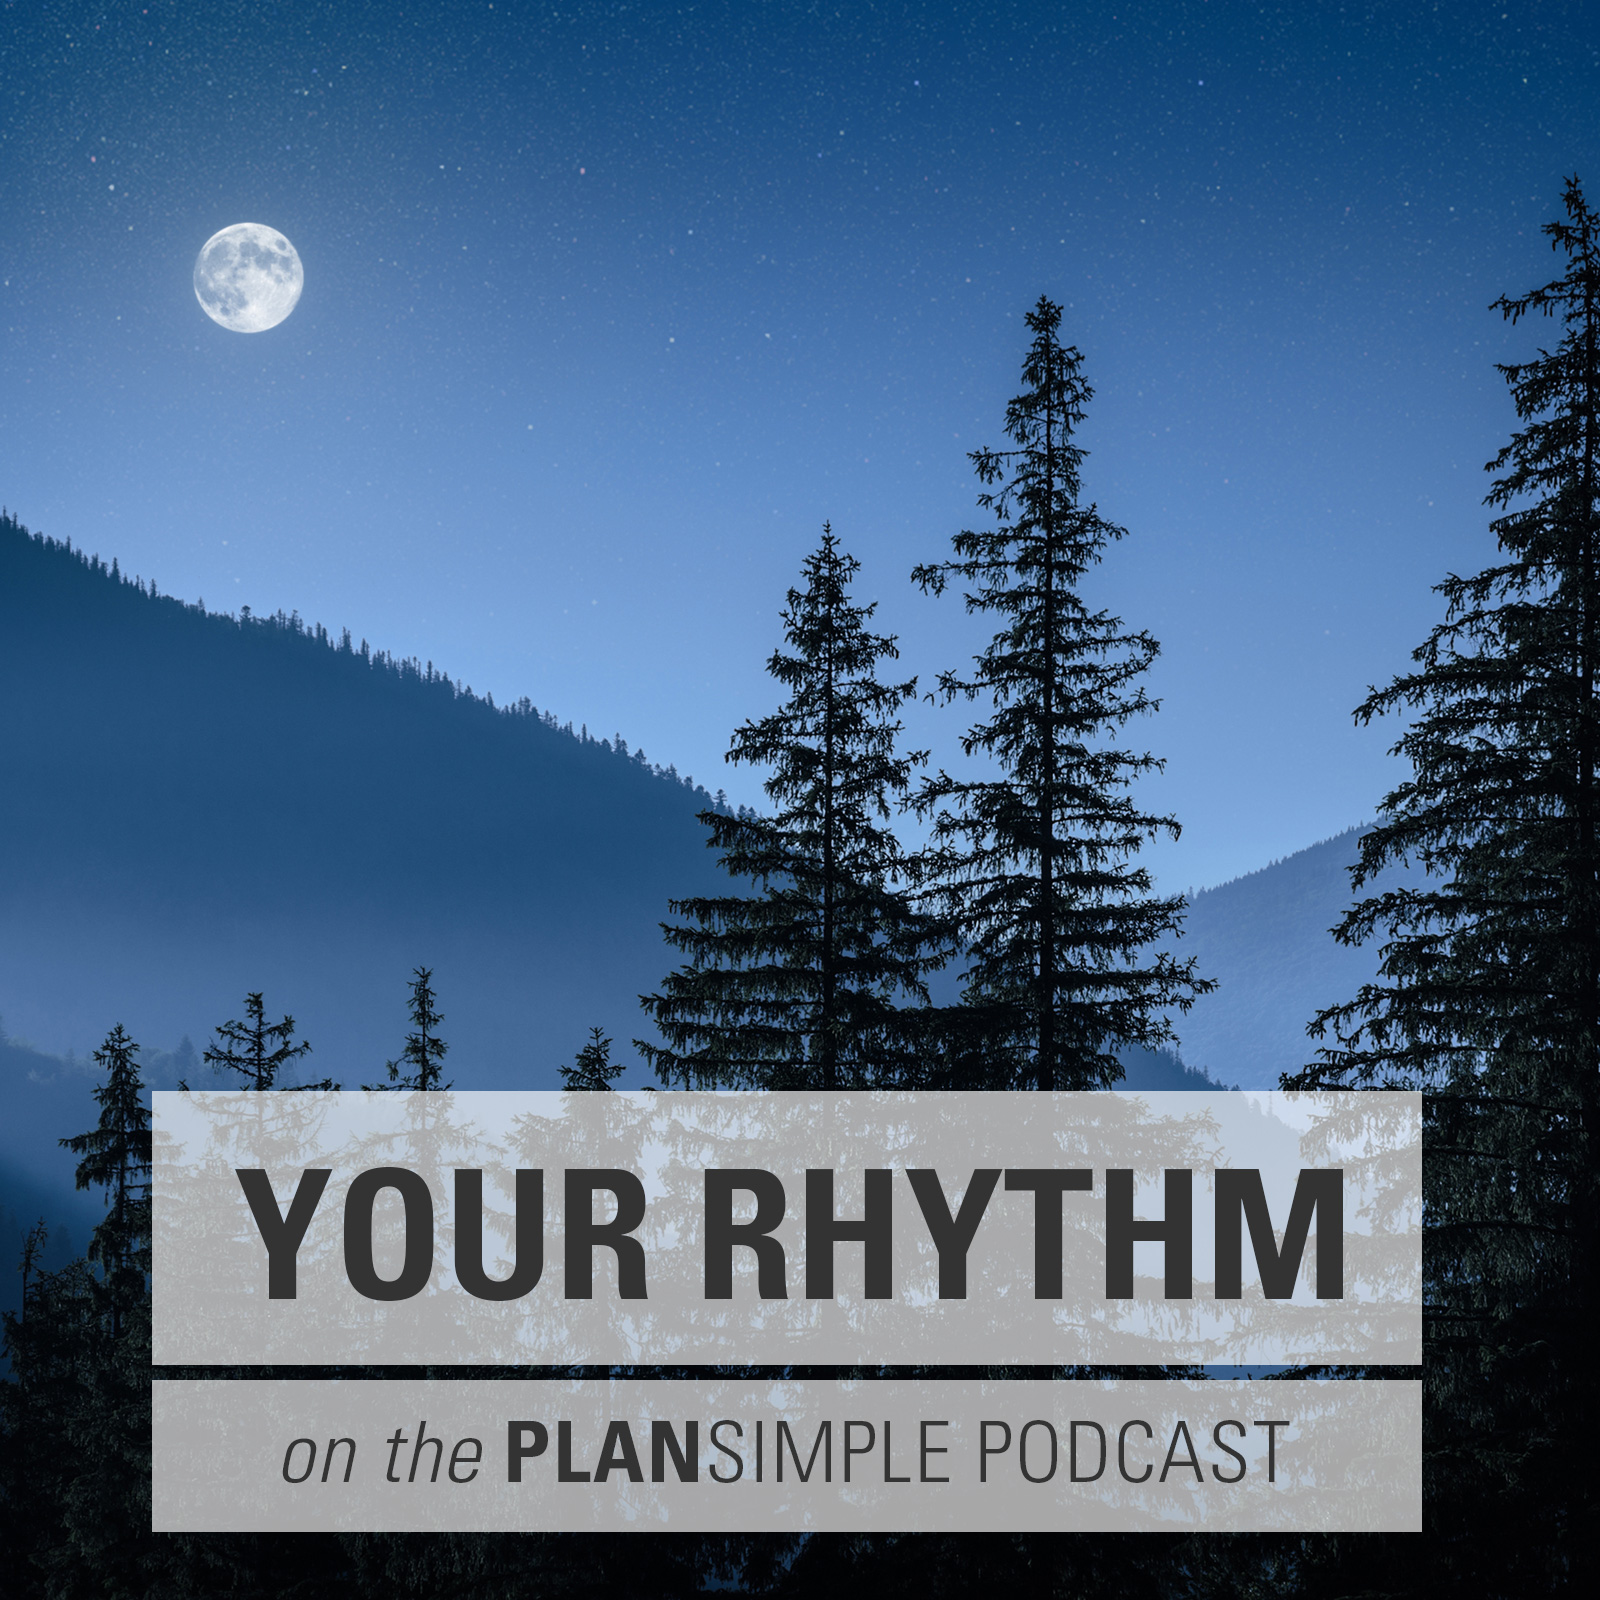 How To Discover Your Rhythm By Observing The Moon